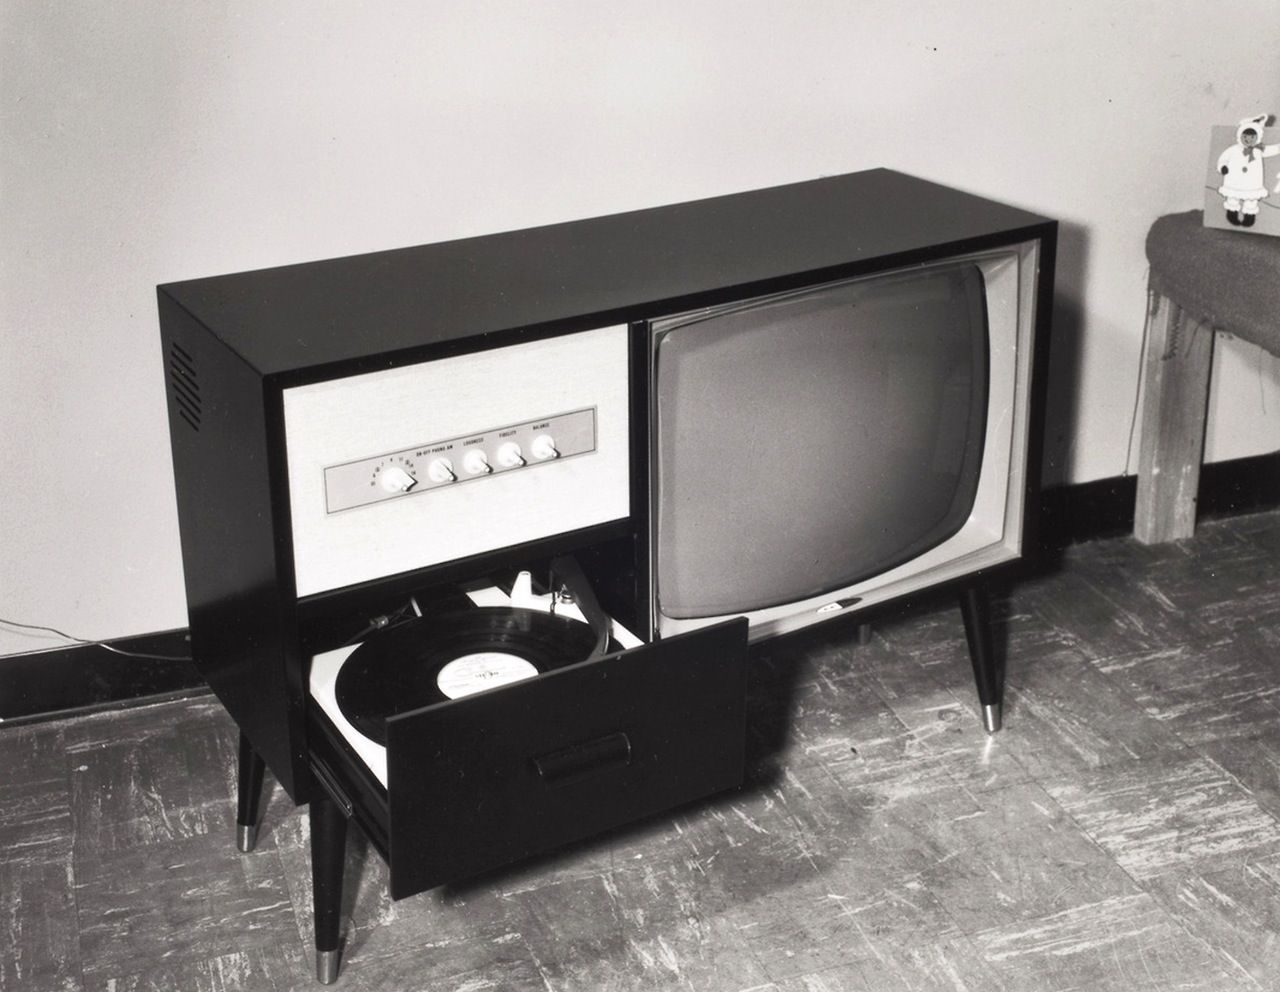 1966 TV + Record Player